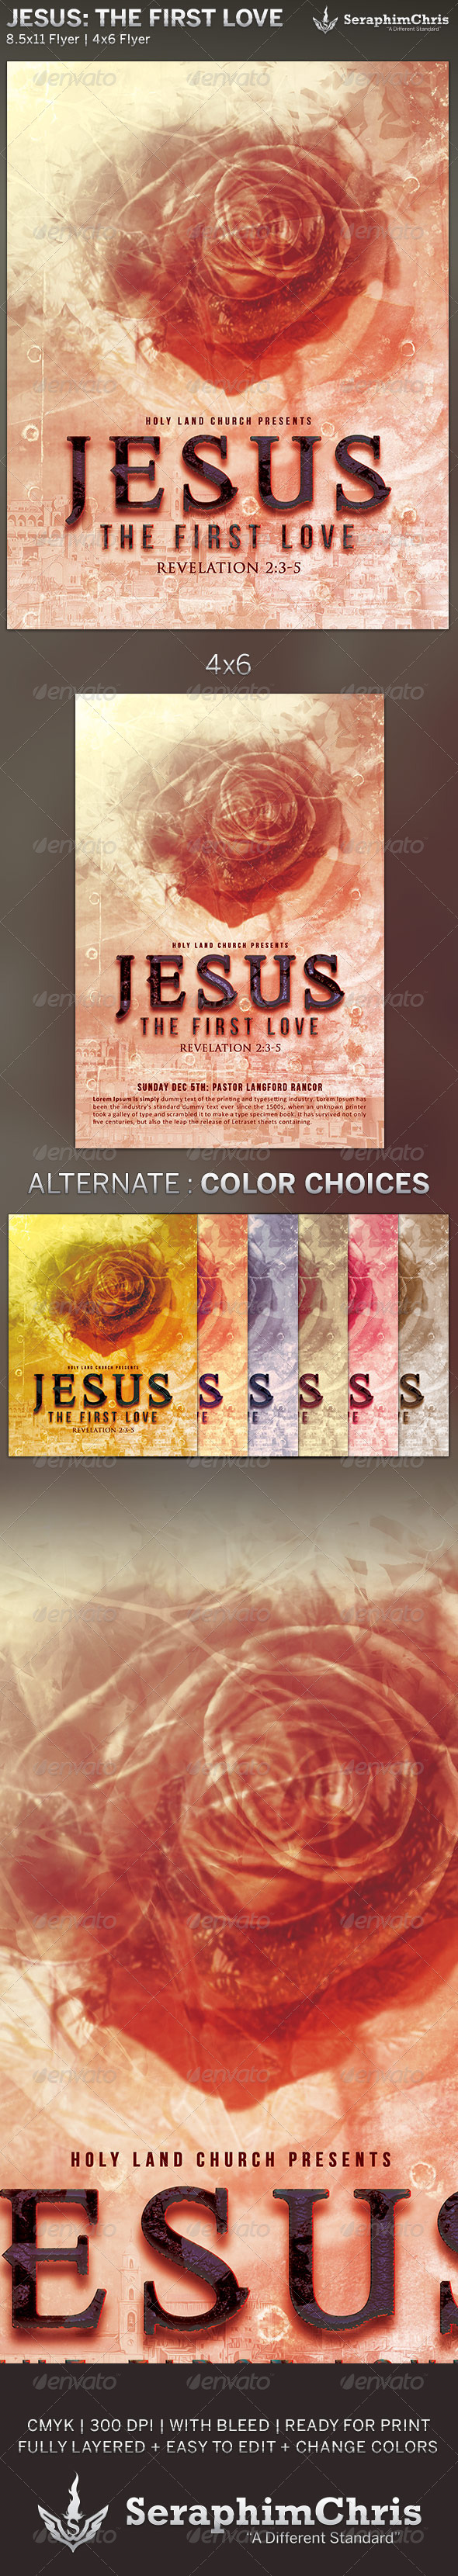 GraphicRiver Jesus The First Love Church Flyer Template 6176879